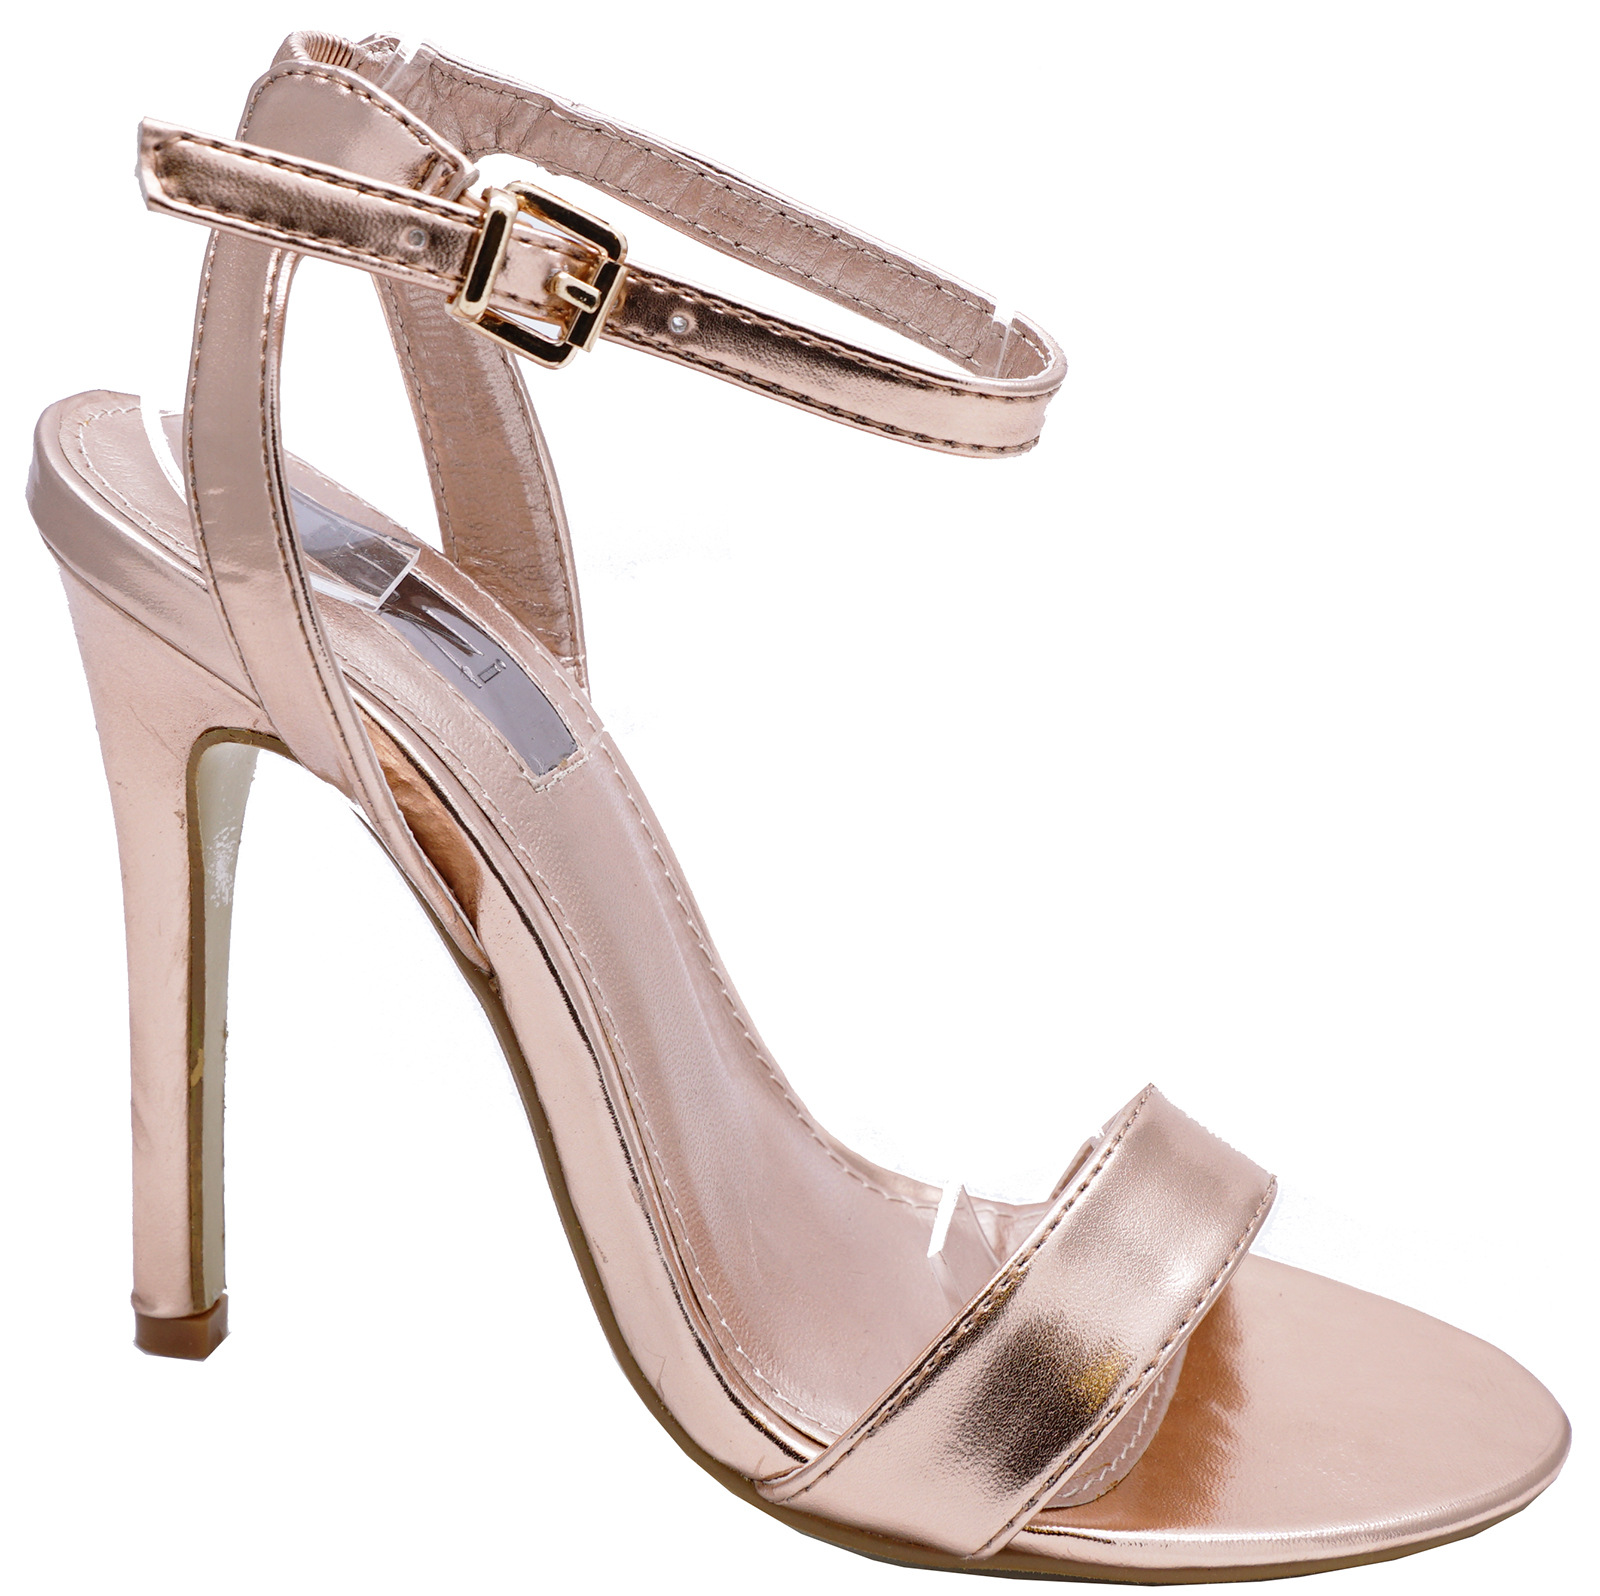 fe664686d Sentinel LADIES ROSE GOLD ANKLE-STRAP ELEGANT PEEPTOE SANDALS WEDDING PARTY  SHOES UK 3-8